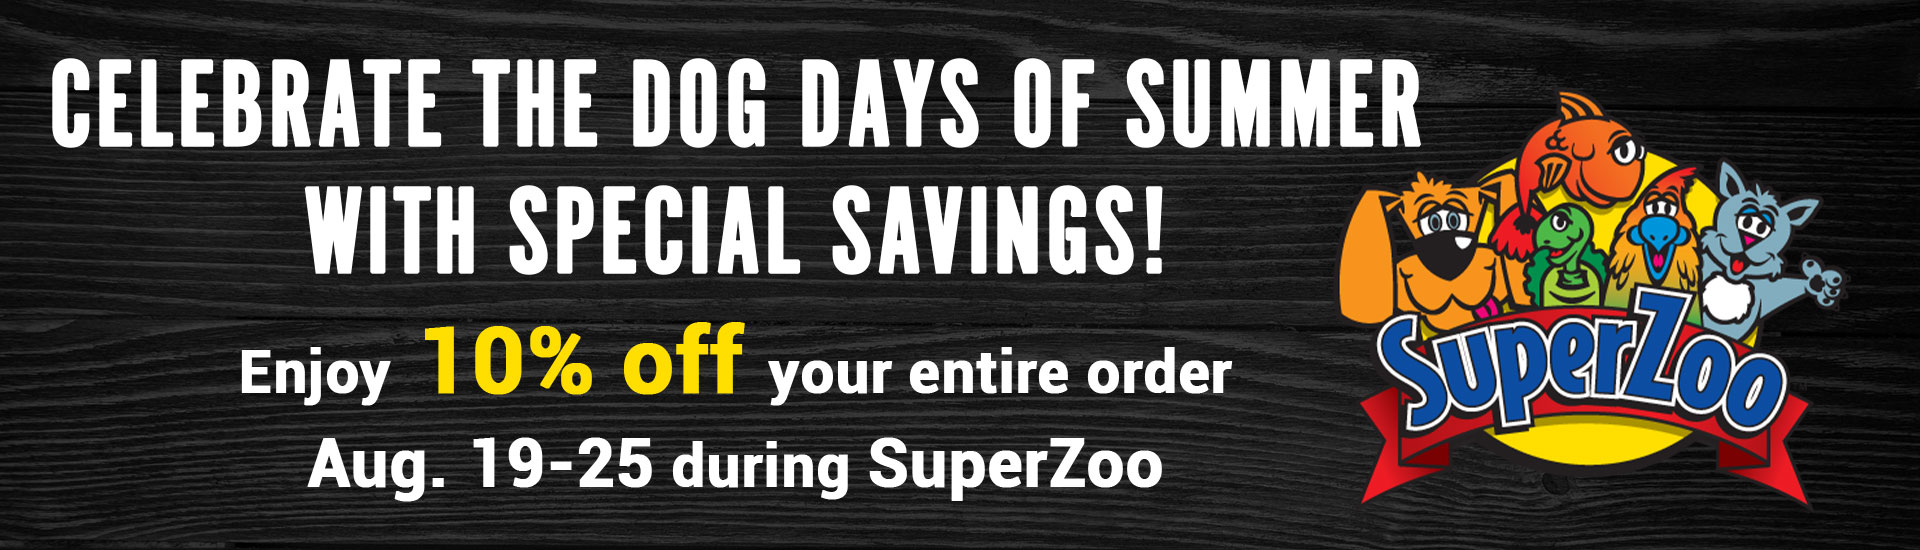 Celebrate the dog days of summer with special savings! Enjoy 10% off your entire order Aug. 19-25 during SuperZoo.